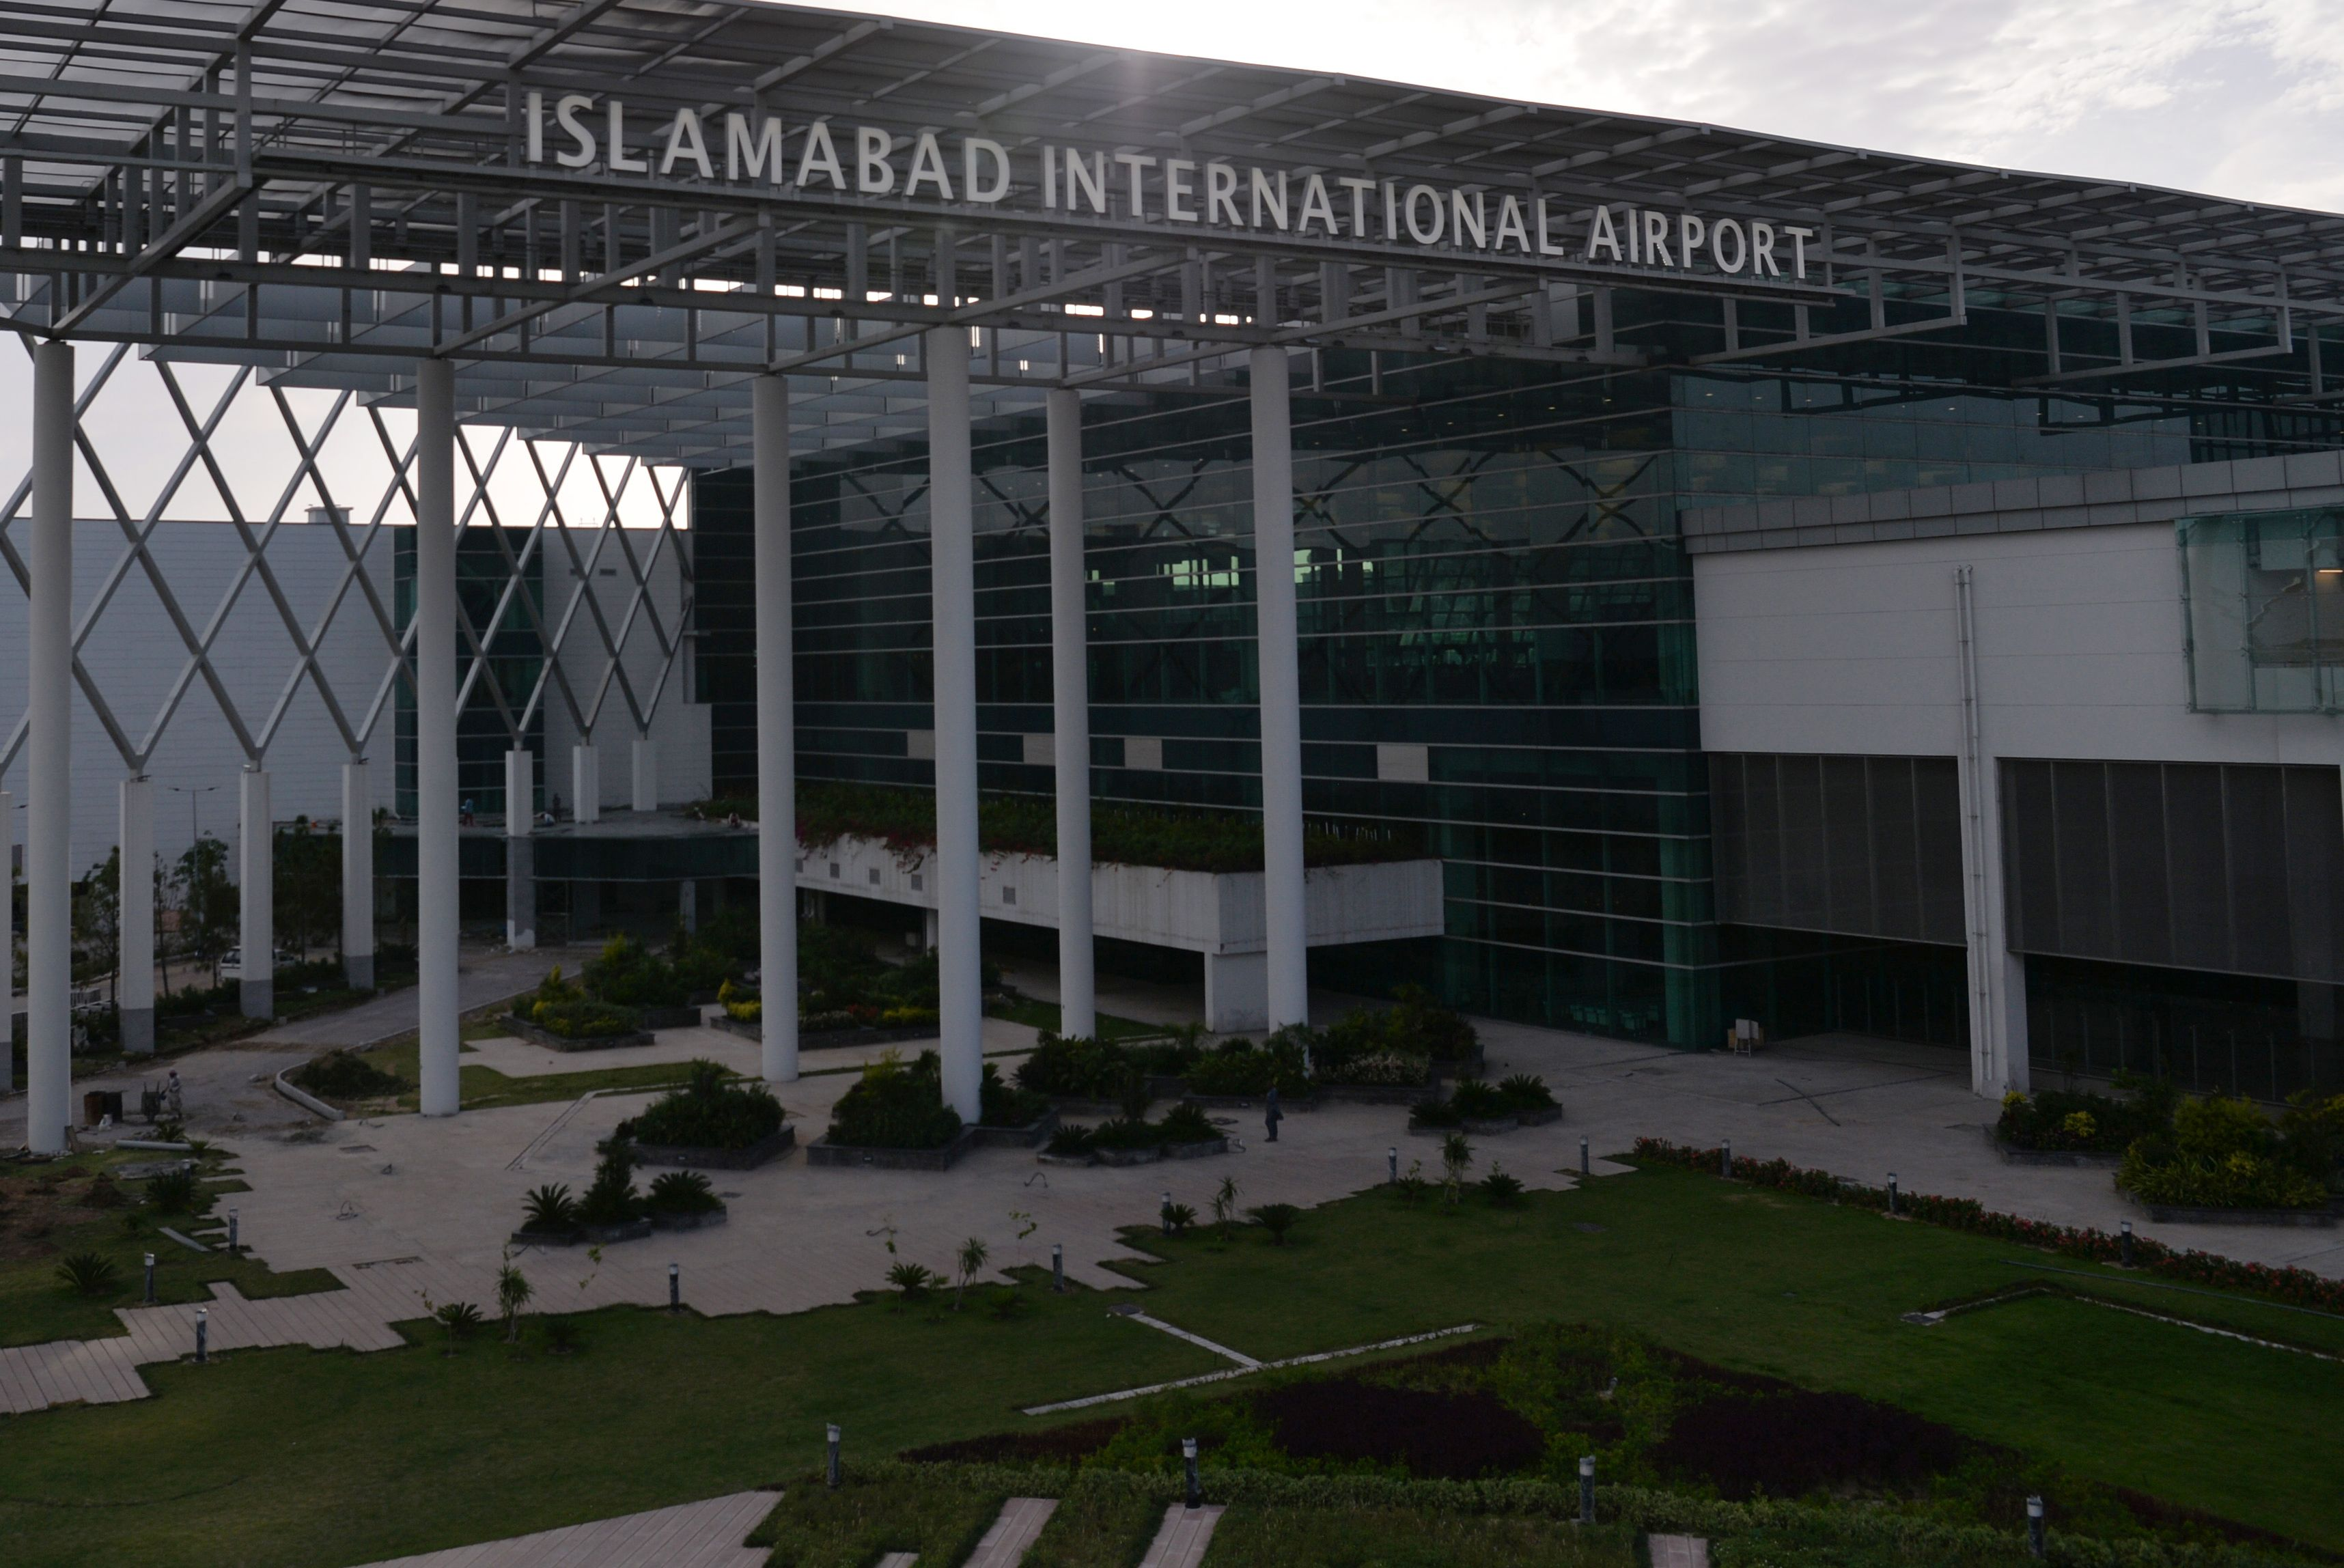 In glistening new airport, Pakistan sees ticket to reviving